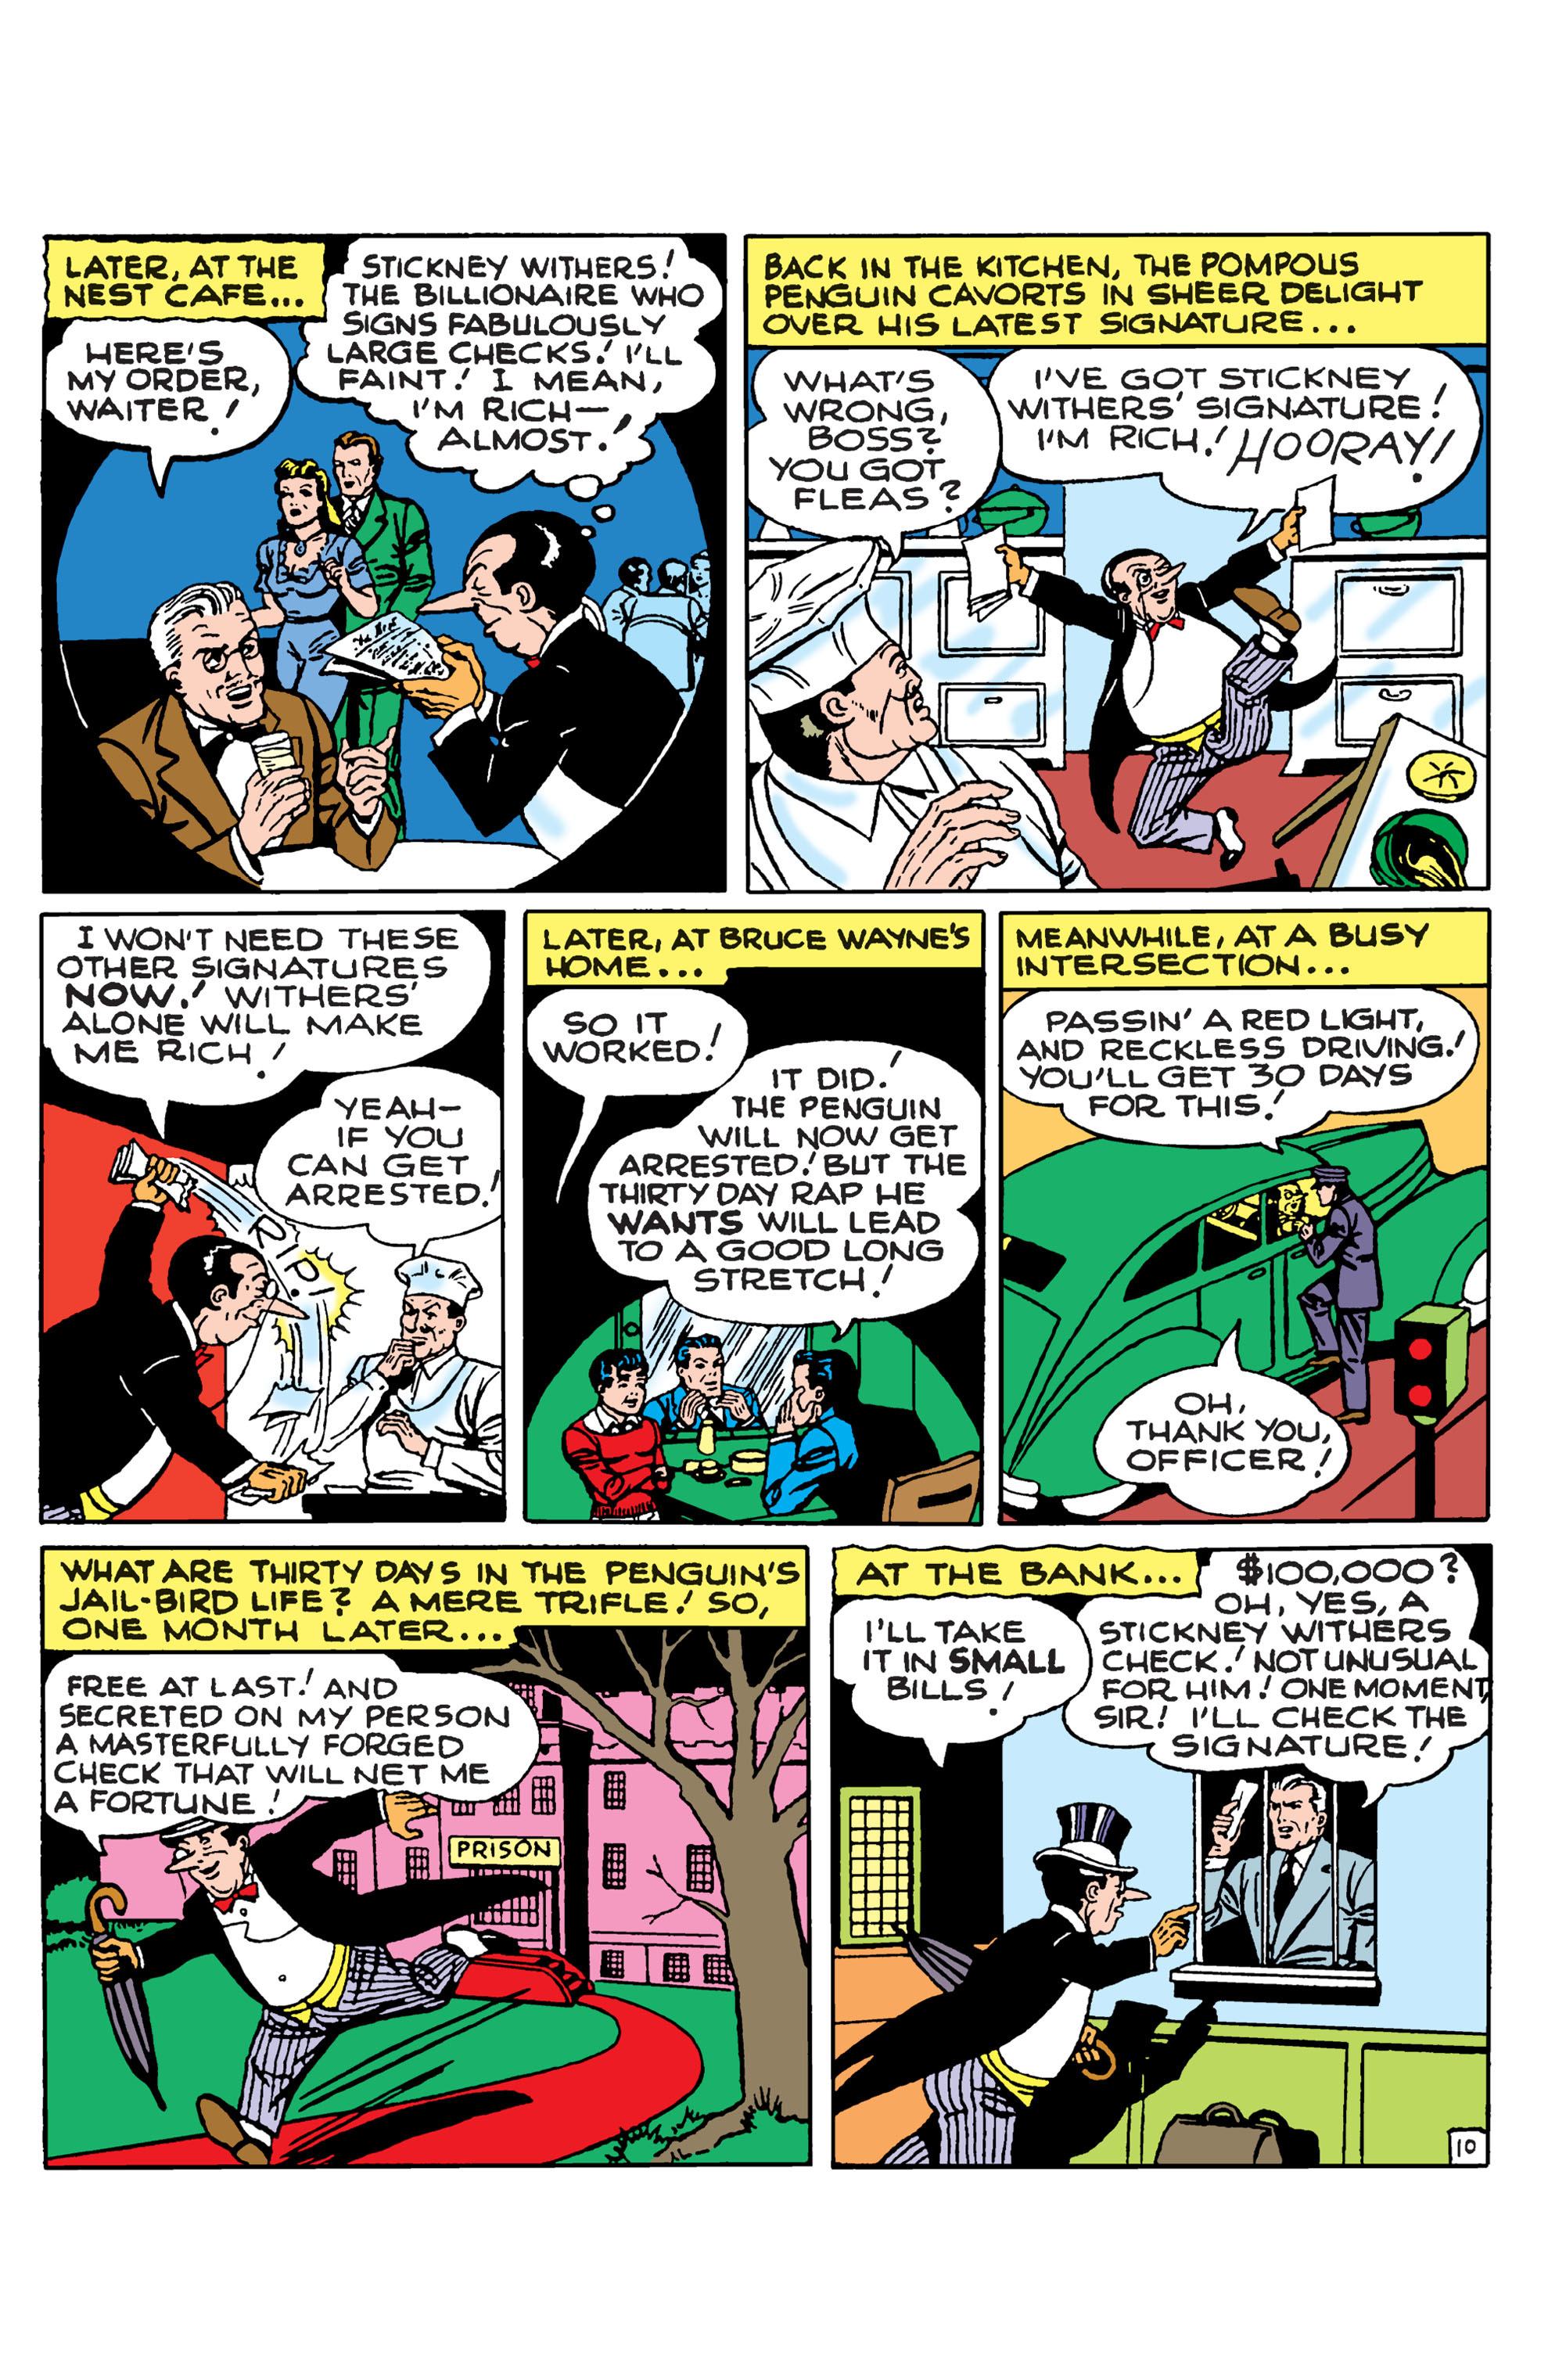 Batman 1940 Issue 36 Read Batman 1940 Issue 36 Comic Online In High Quality Read Full Comic Online For Free Read Comics Online In High Quality Viewcomiconline Com